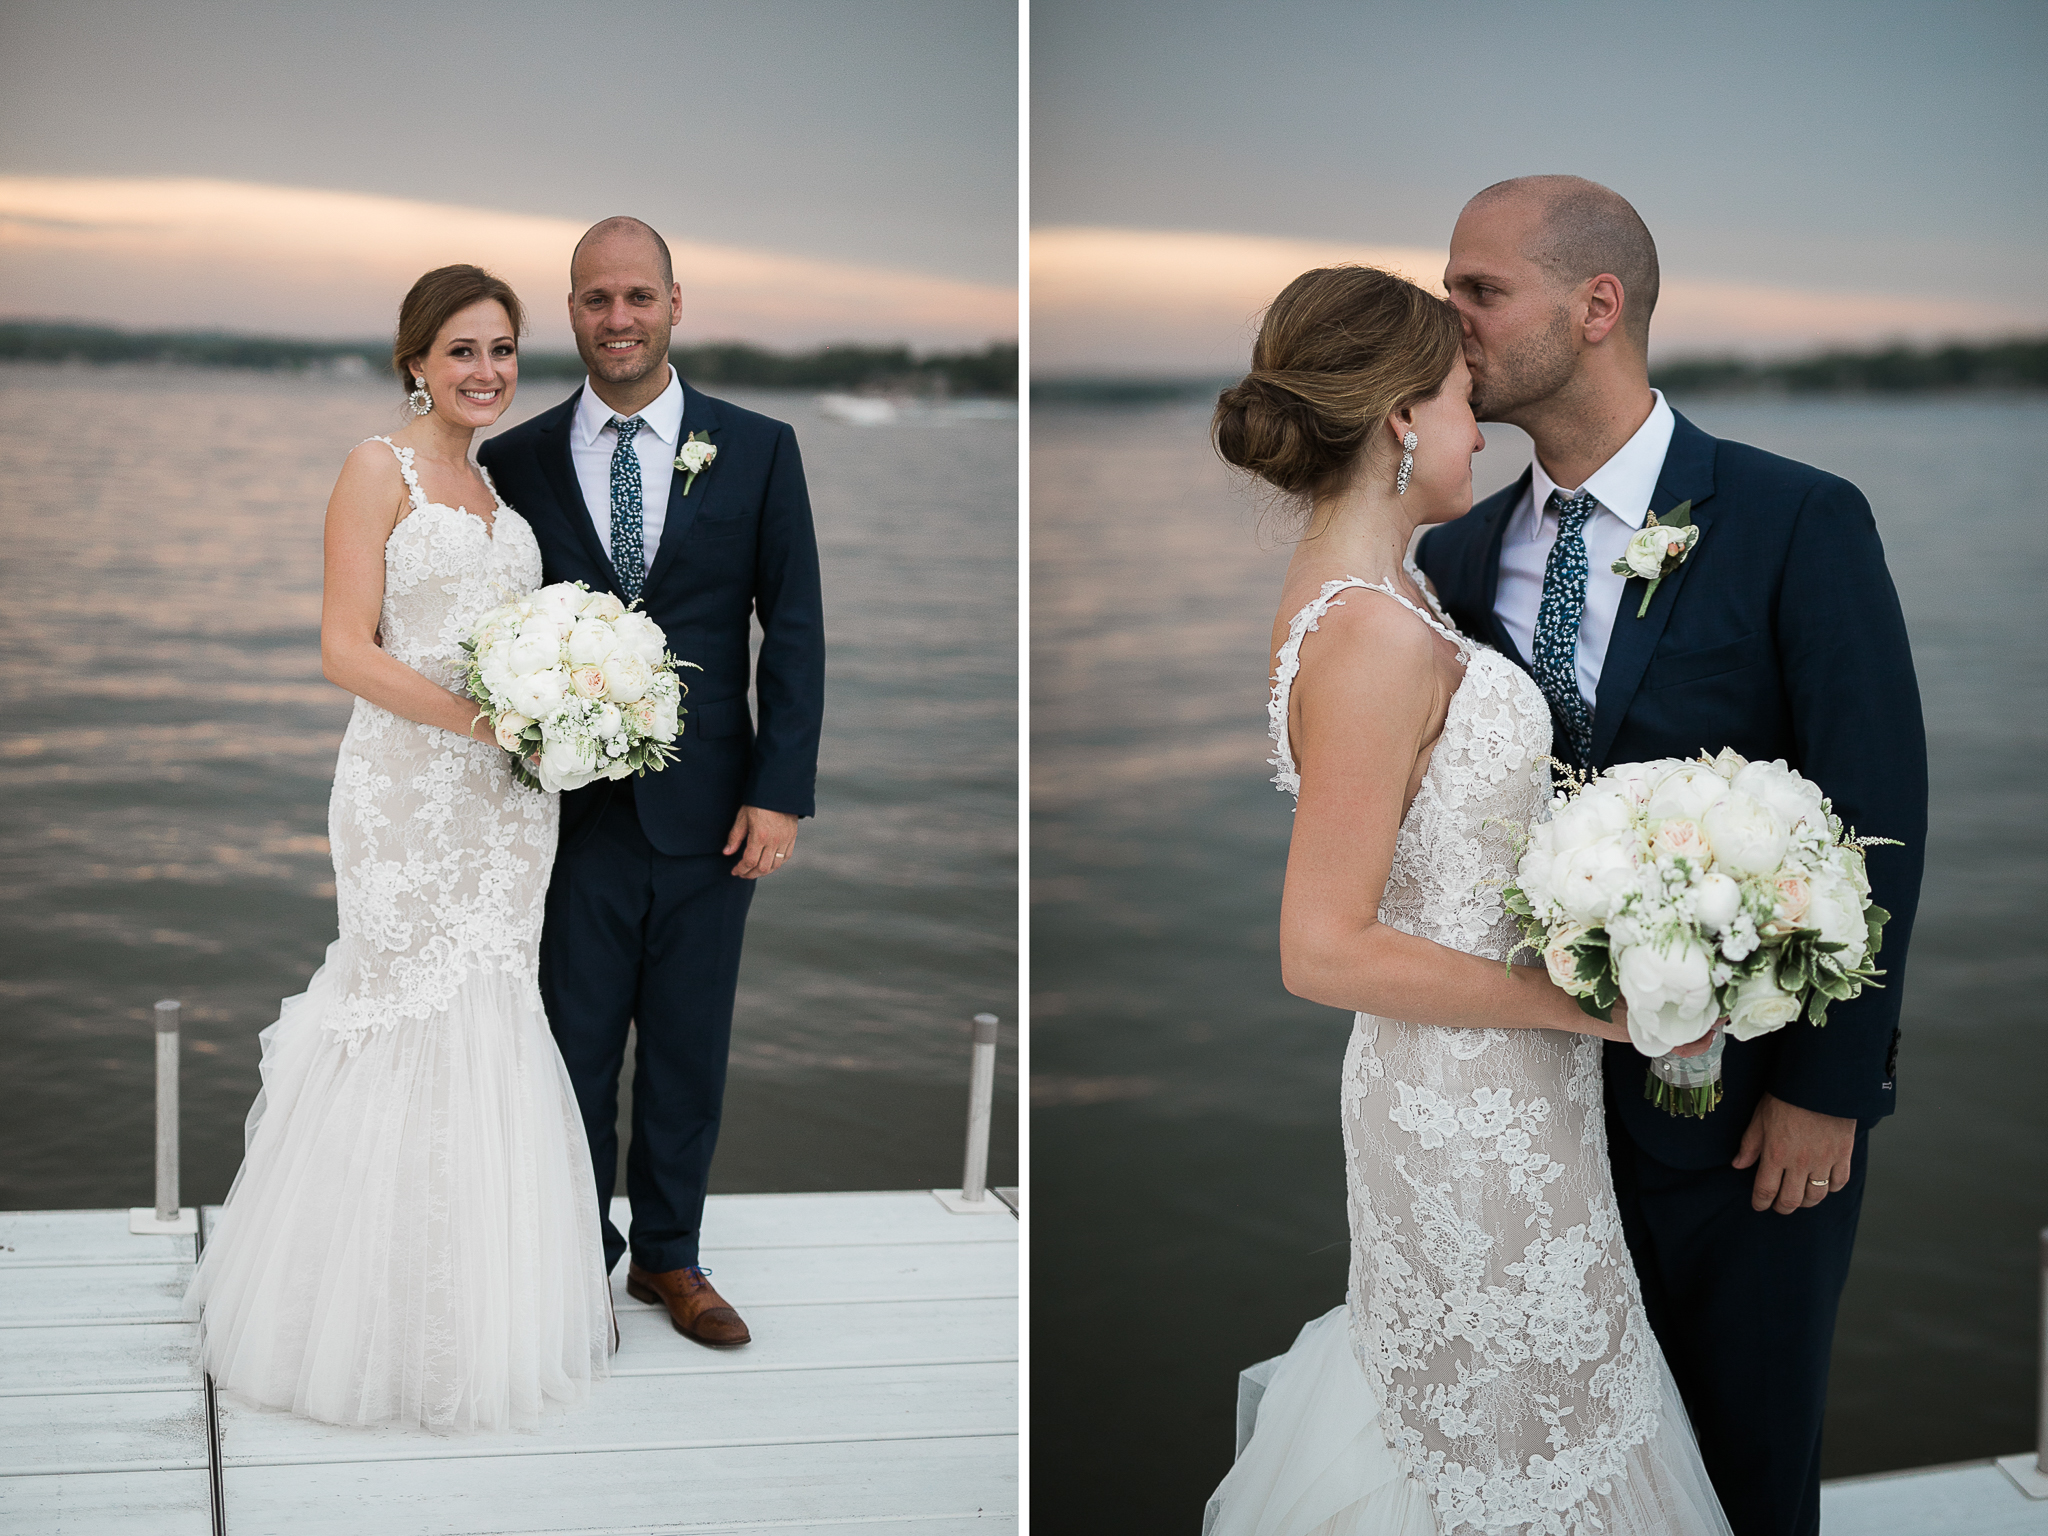 Backyard-Wisconsin-Lake-wedding_191.jpg